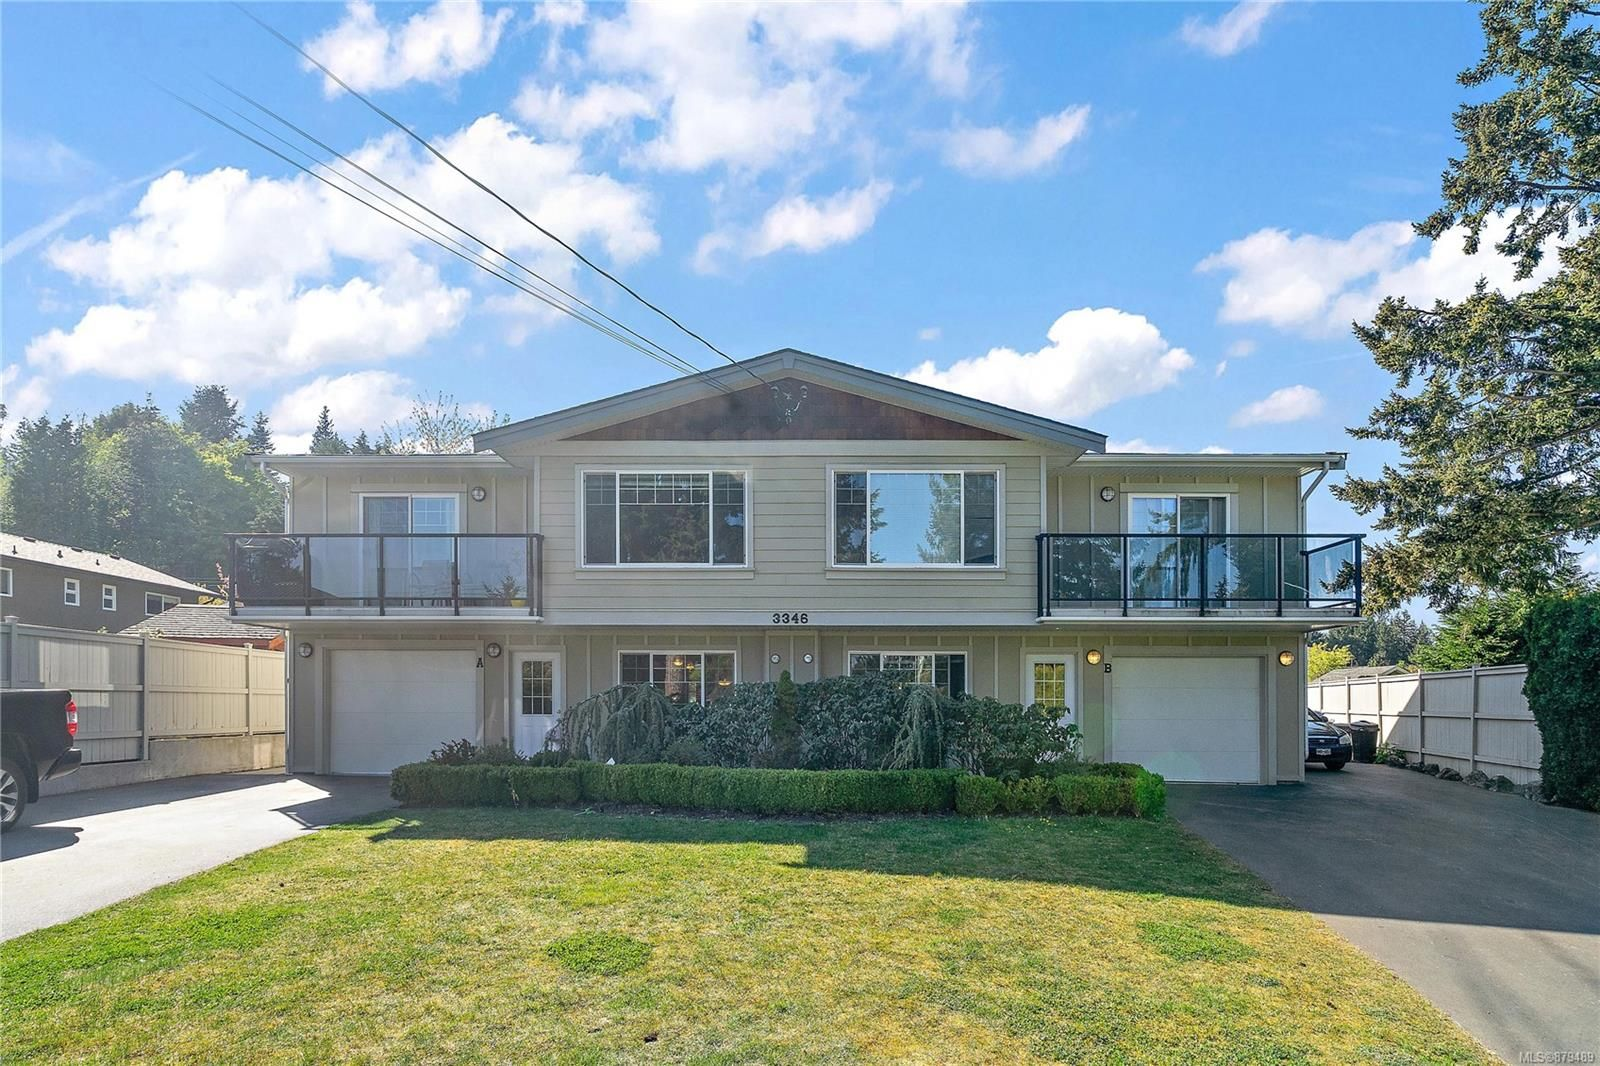 Main Photo: B 3346 Willowdale Rd in : Co Triangle Half Duplex for sale (Colwood)  : MLS®# 879489